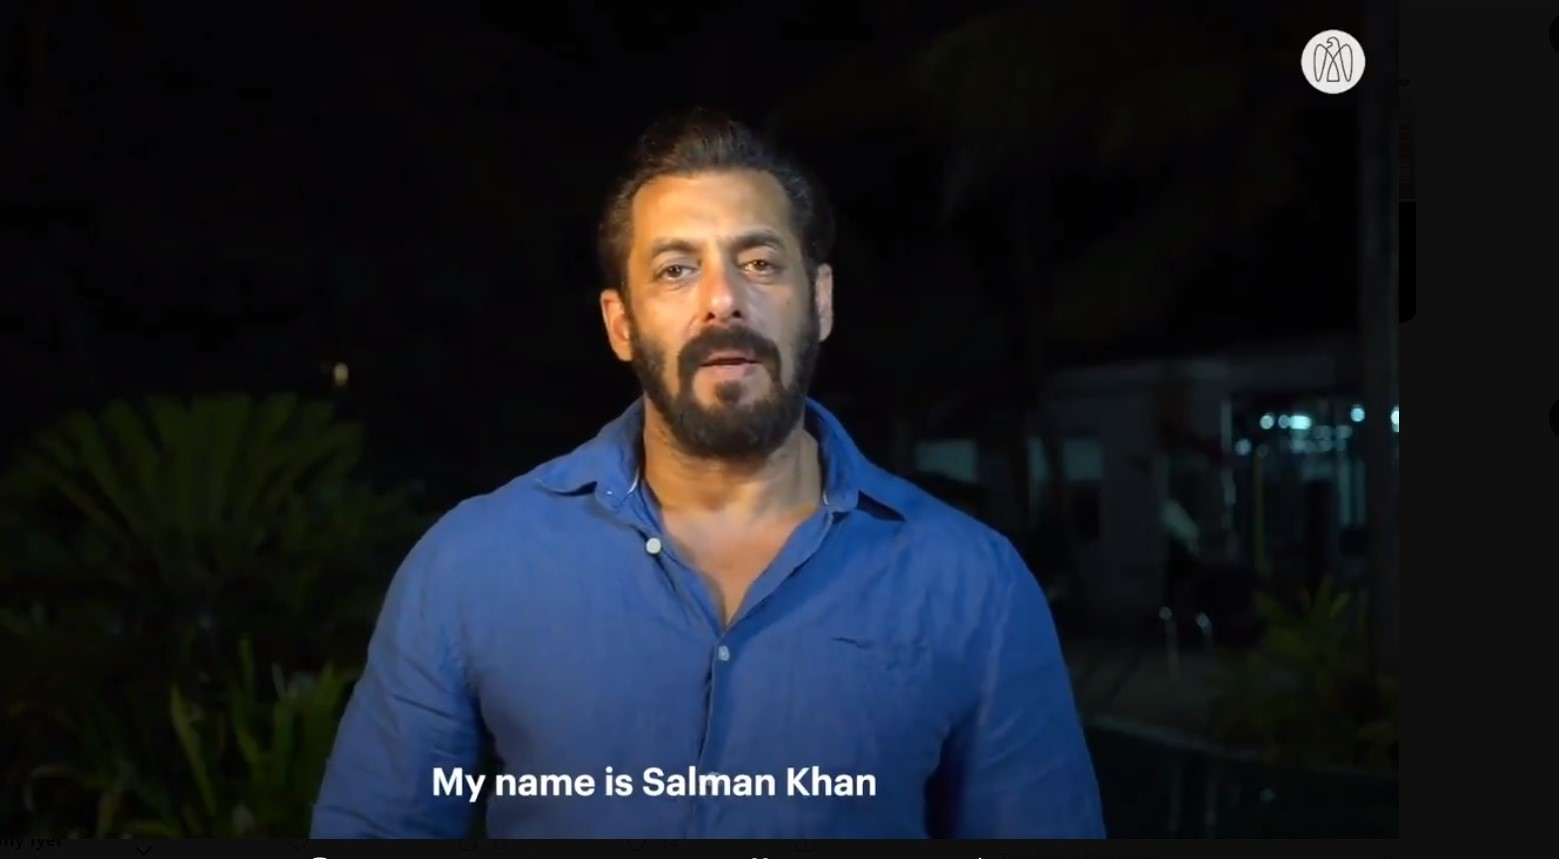 Bollywood actor Salman Khan roped in to convey a special message to Indian expats in the UAE, amid the coronavirus pandemic. Photo: Screengrab of video